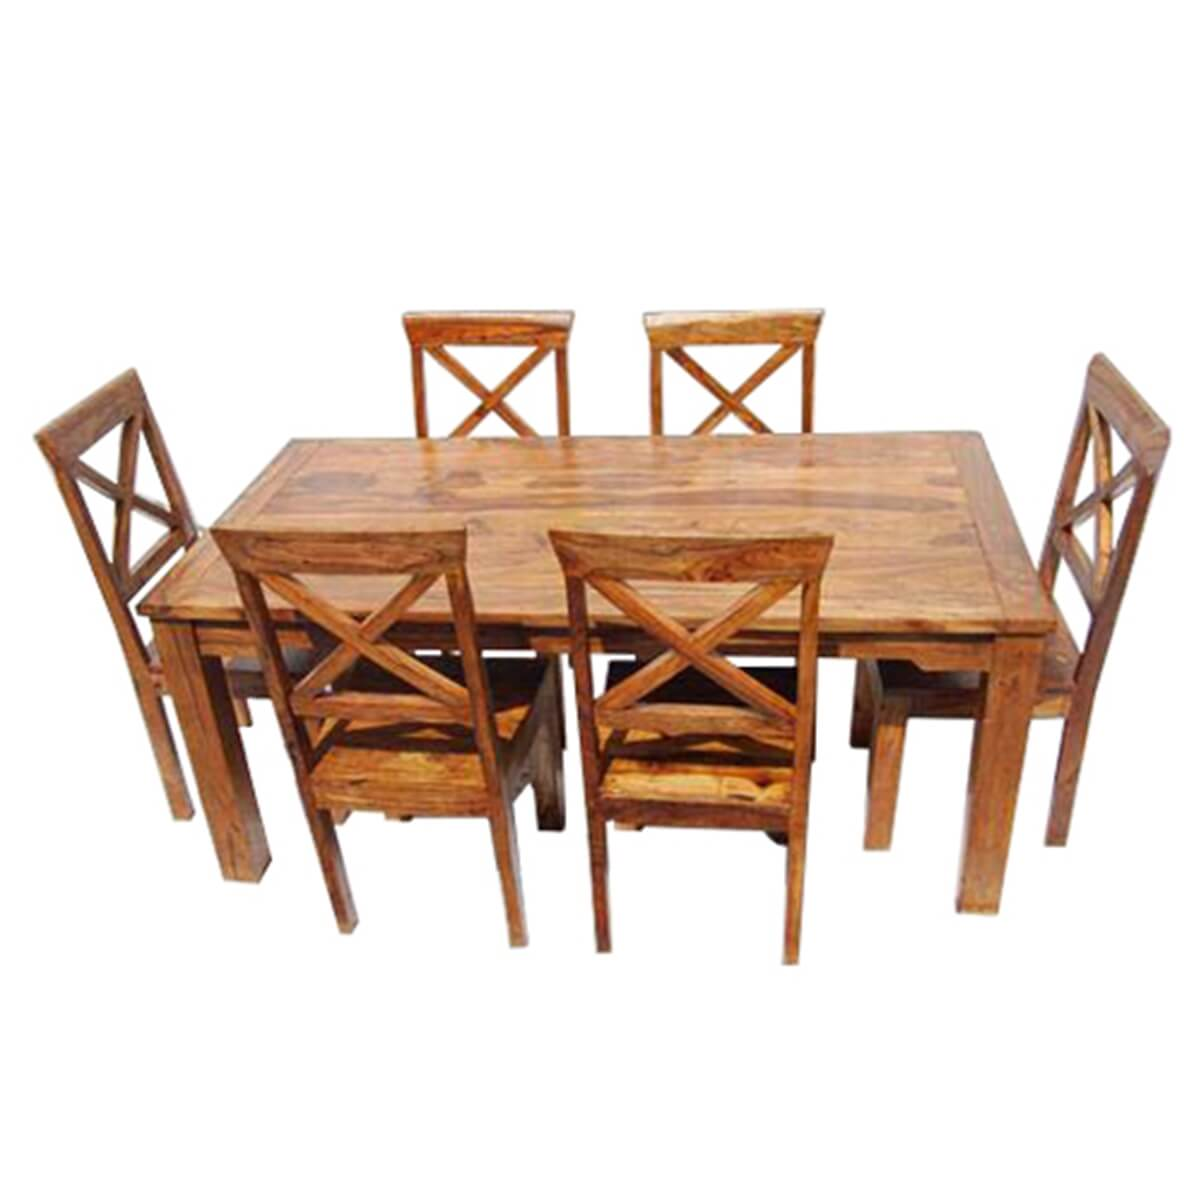 Rustic Solid Wood Oklahoma Dining Table amp Chair Set : 1351 from www.sierralivingconcepts.com size 1200 x 1200 jpeg 277kB